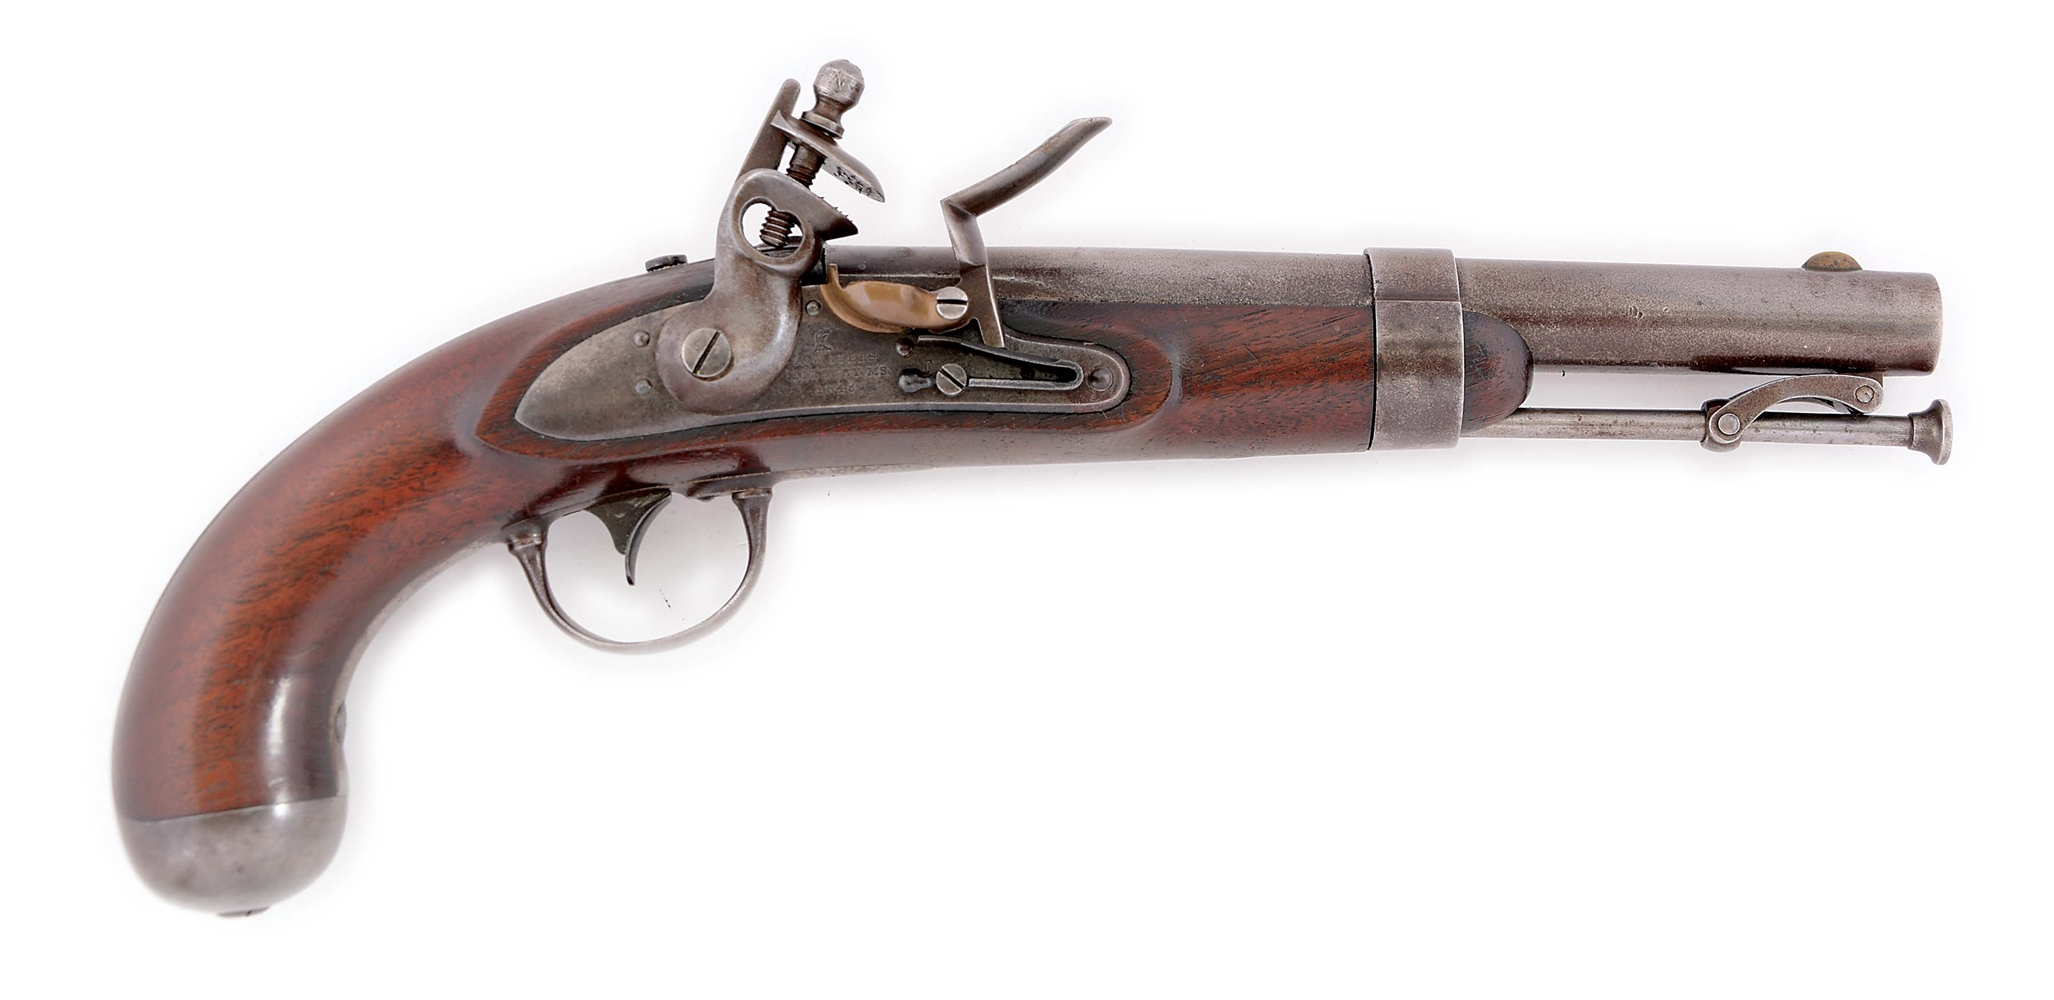 (A) A MODEL 1836 US SINGLE SHOT MARTIAL PISTOL BY A.H. WATERS DATED 1843.